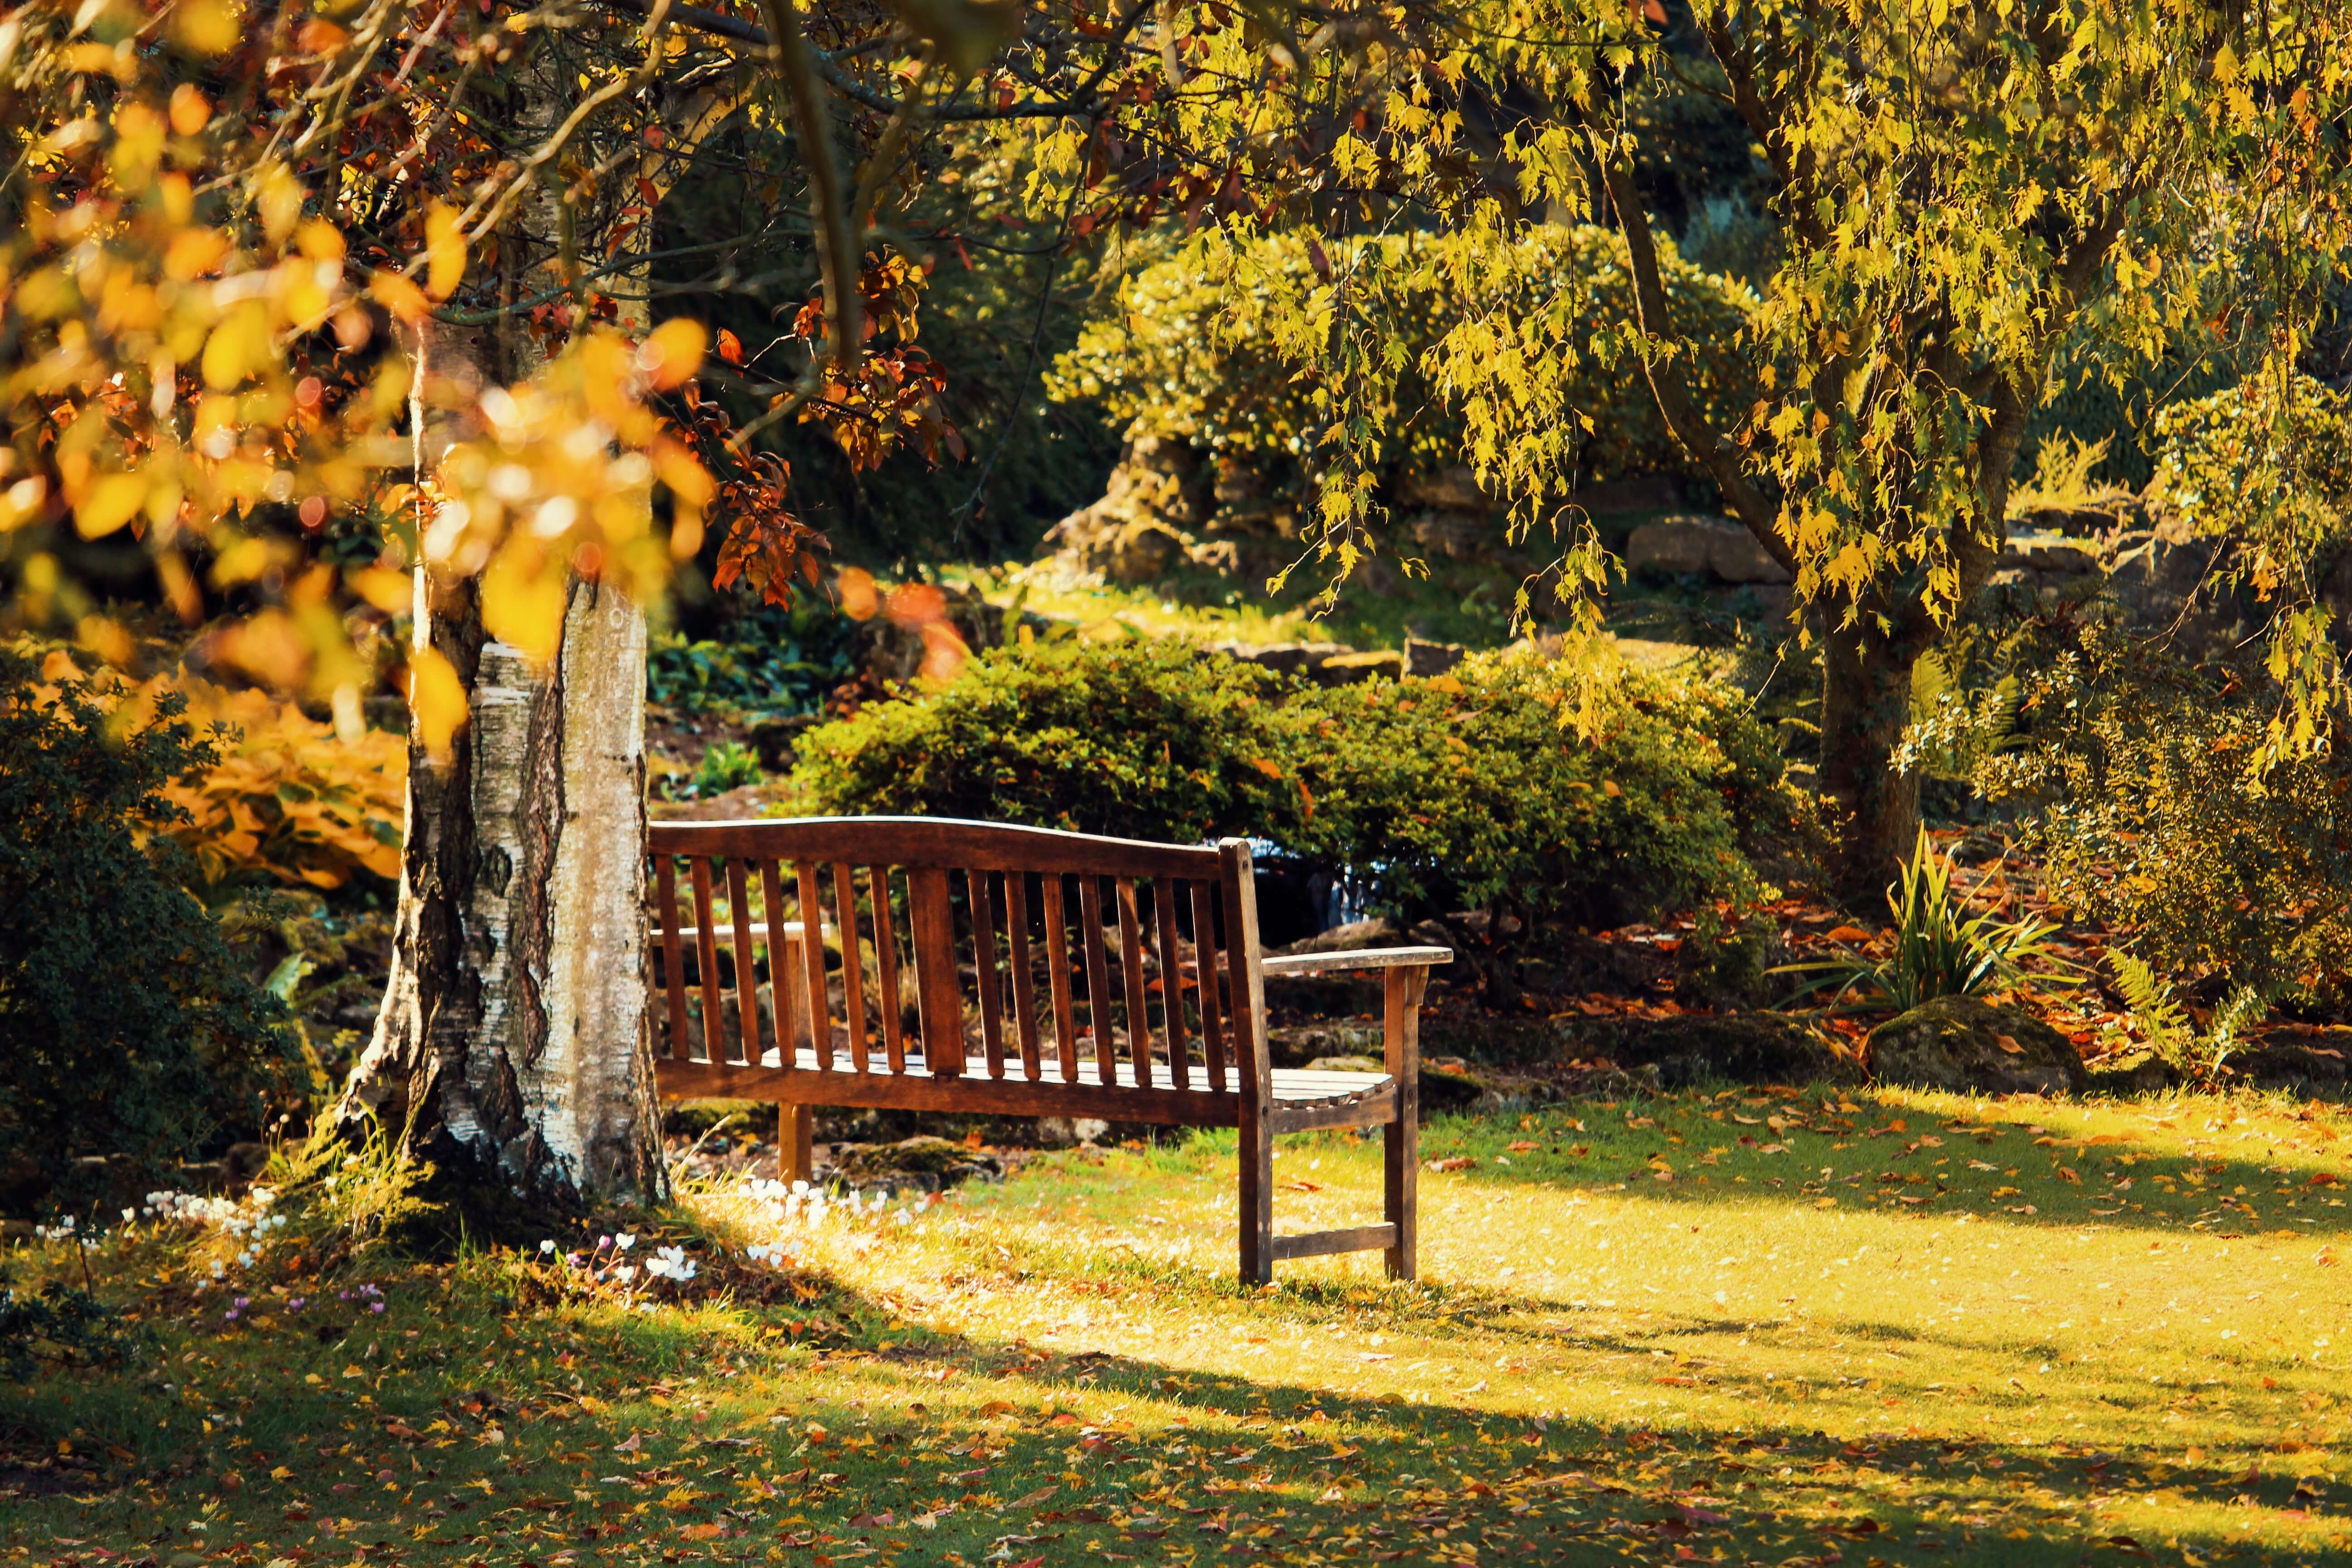 park during fall with yellow falling leave and brown park bench